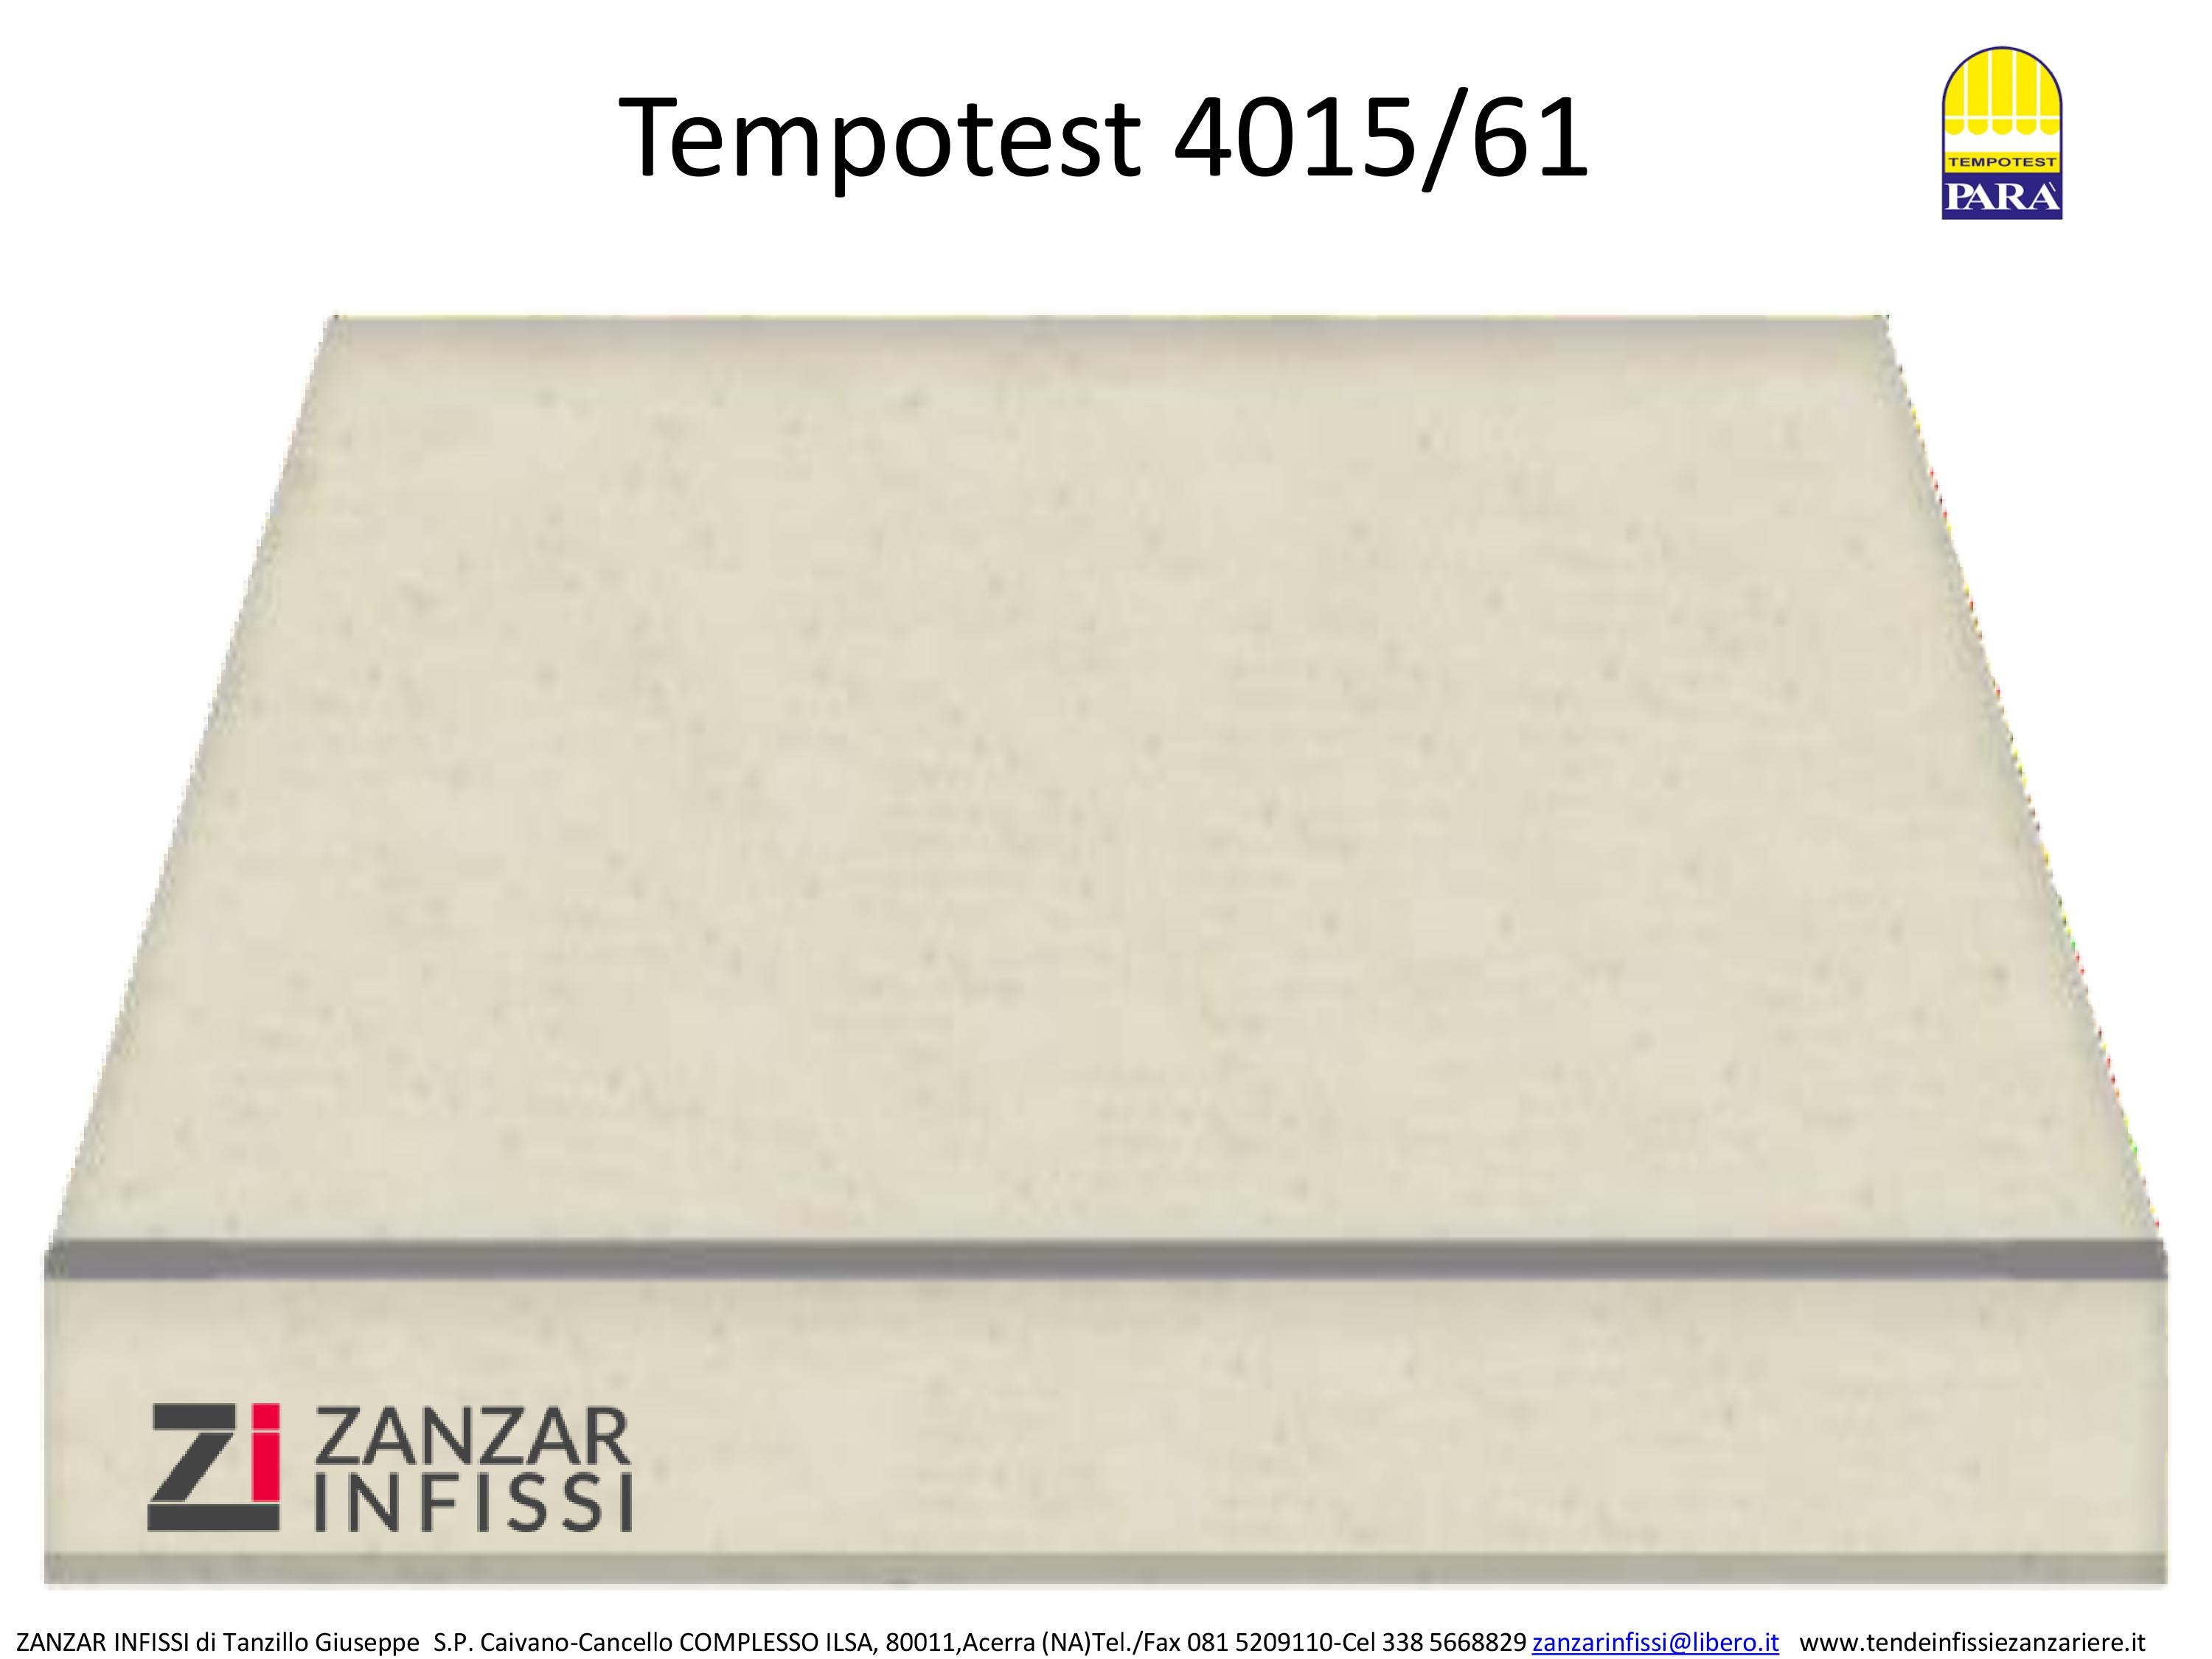 Tempotest 4015/61